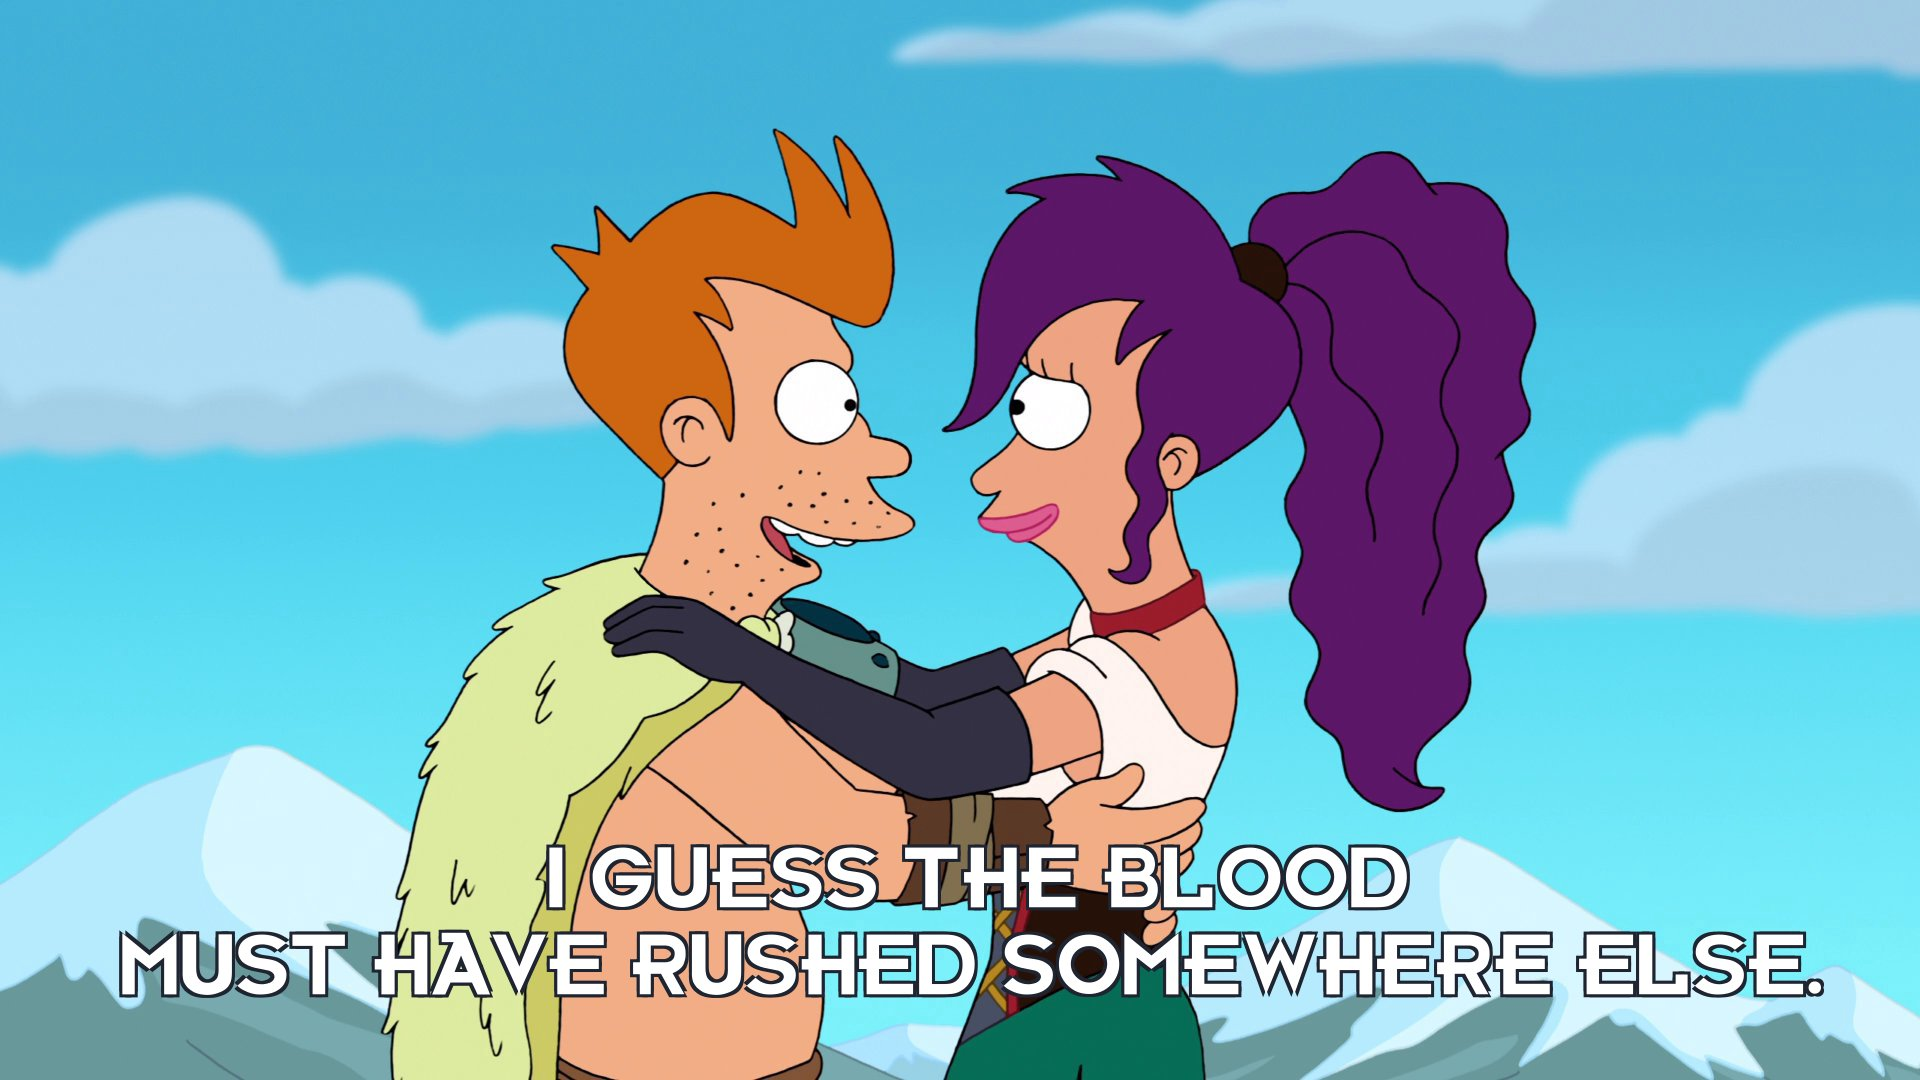 Philip J Fry: I guess the blood must have rushed somewhere else.